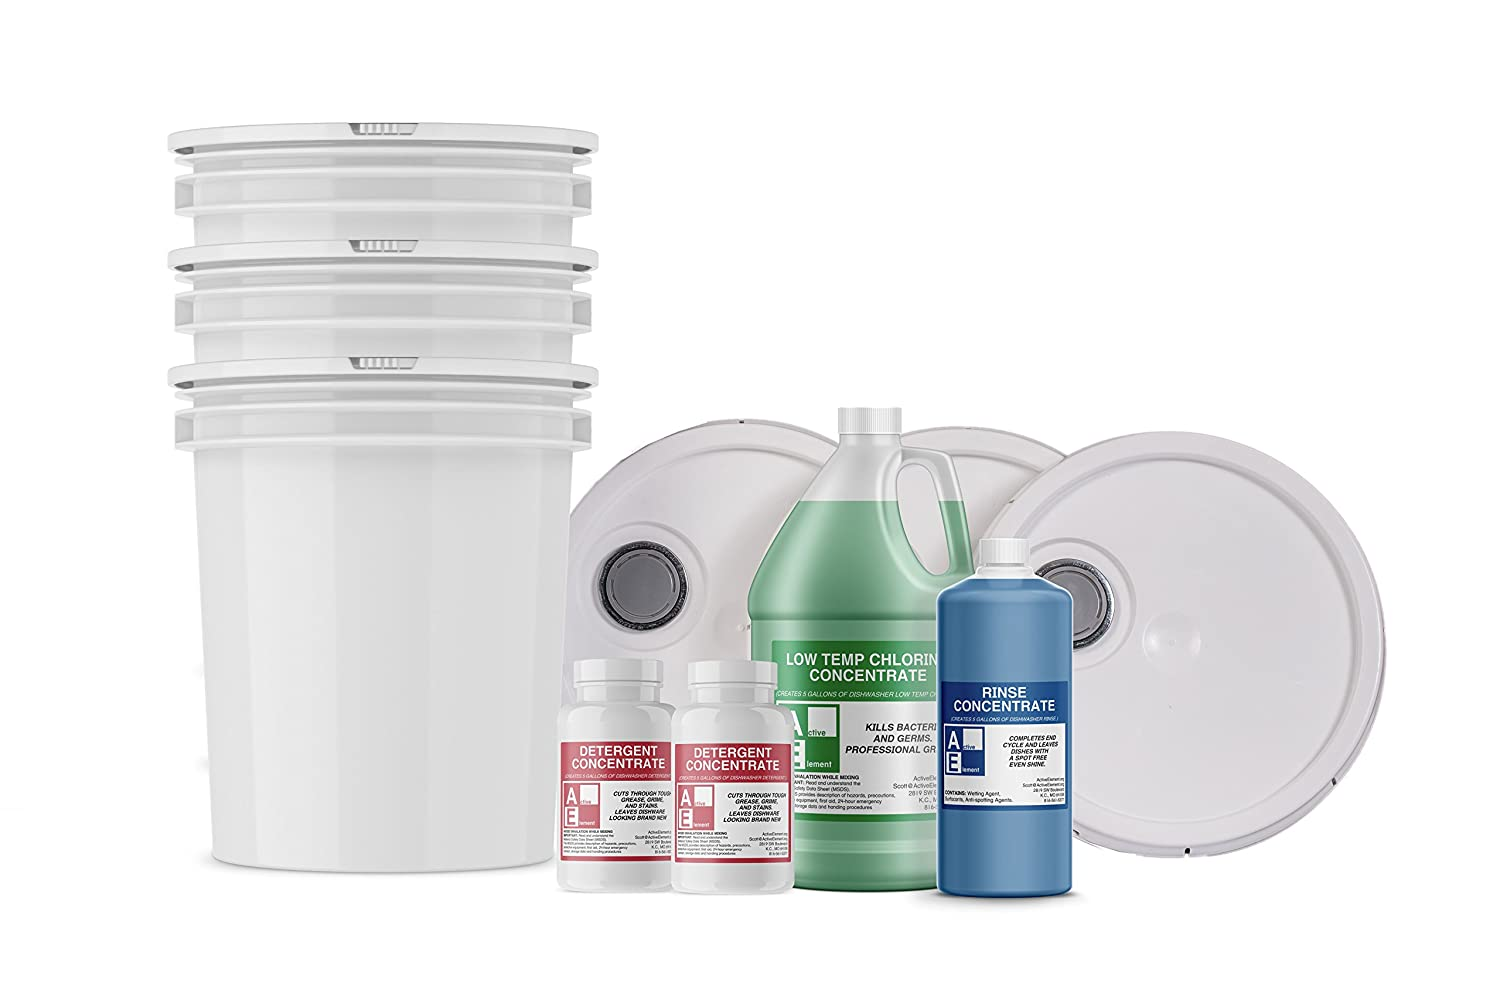 Starter Pack w/buckets (1-detergent, 1-chlorine, 1-rinse), Commercial Grade,